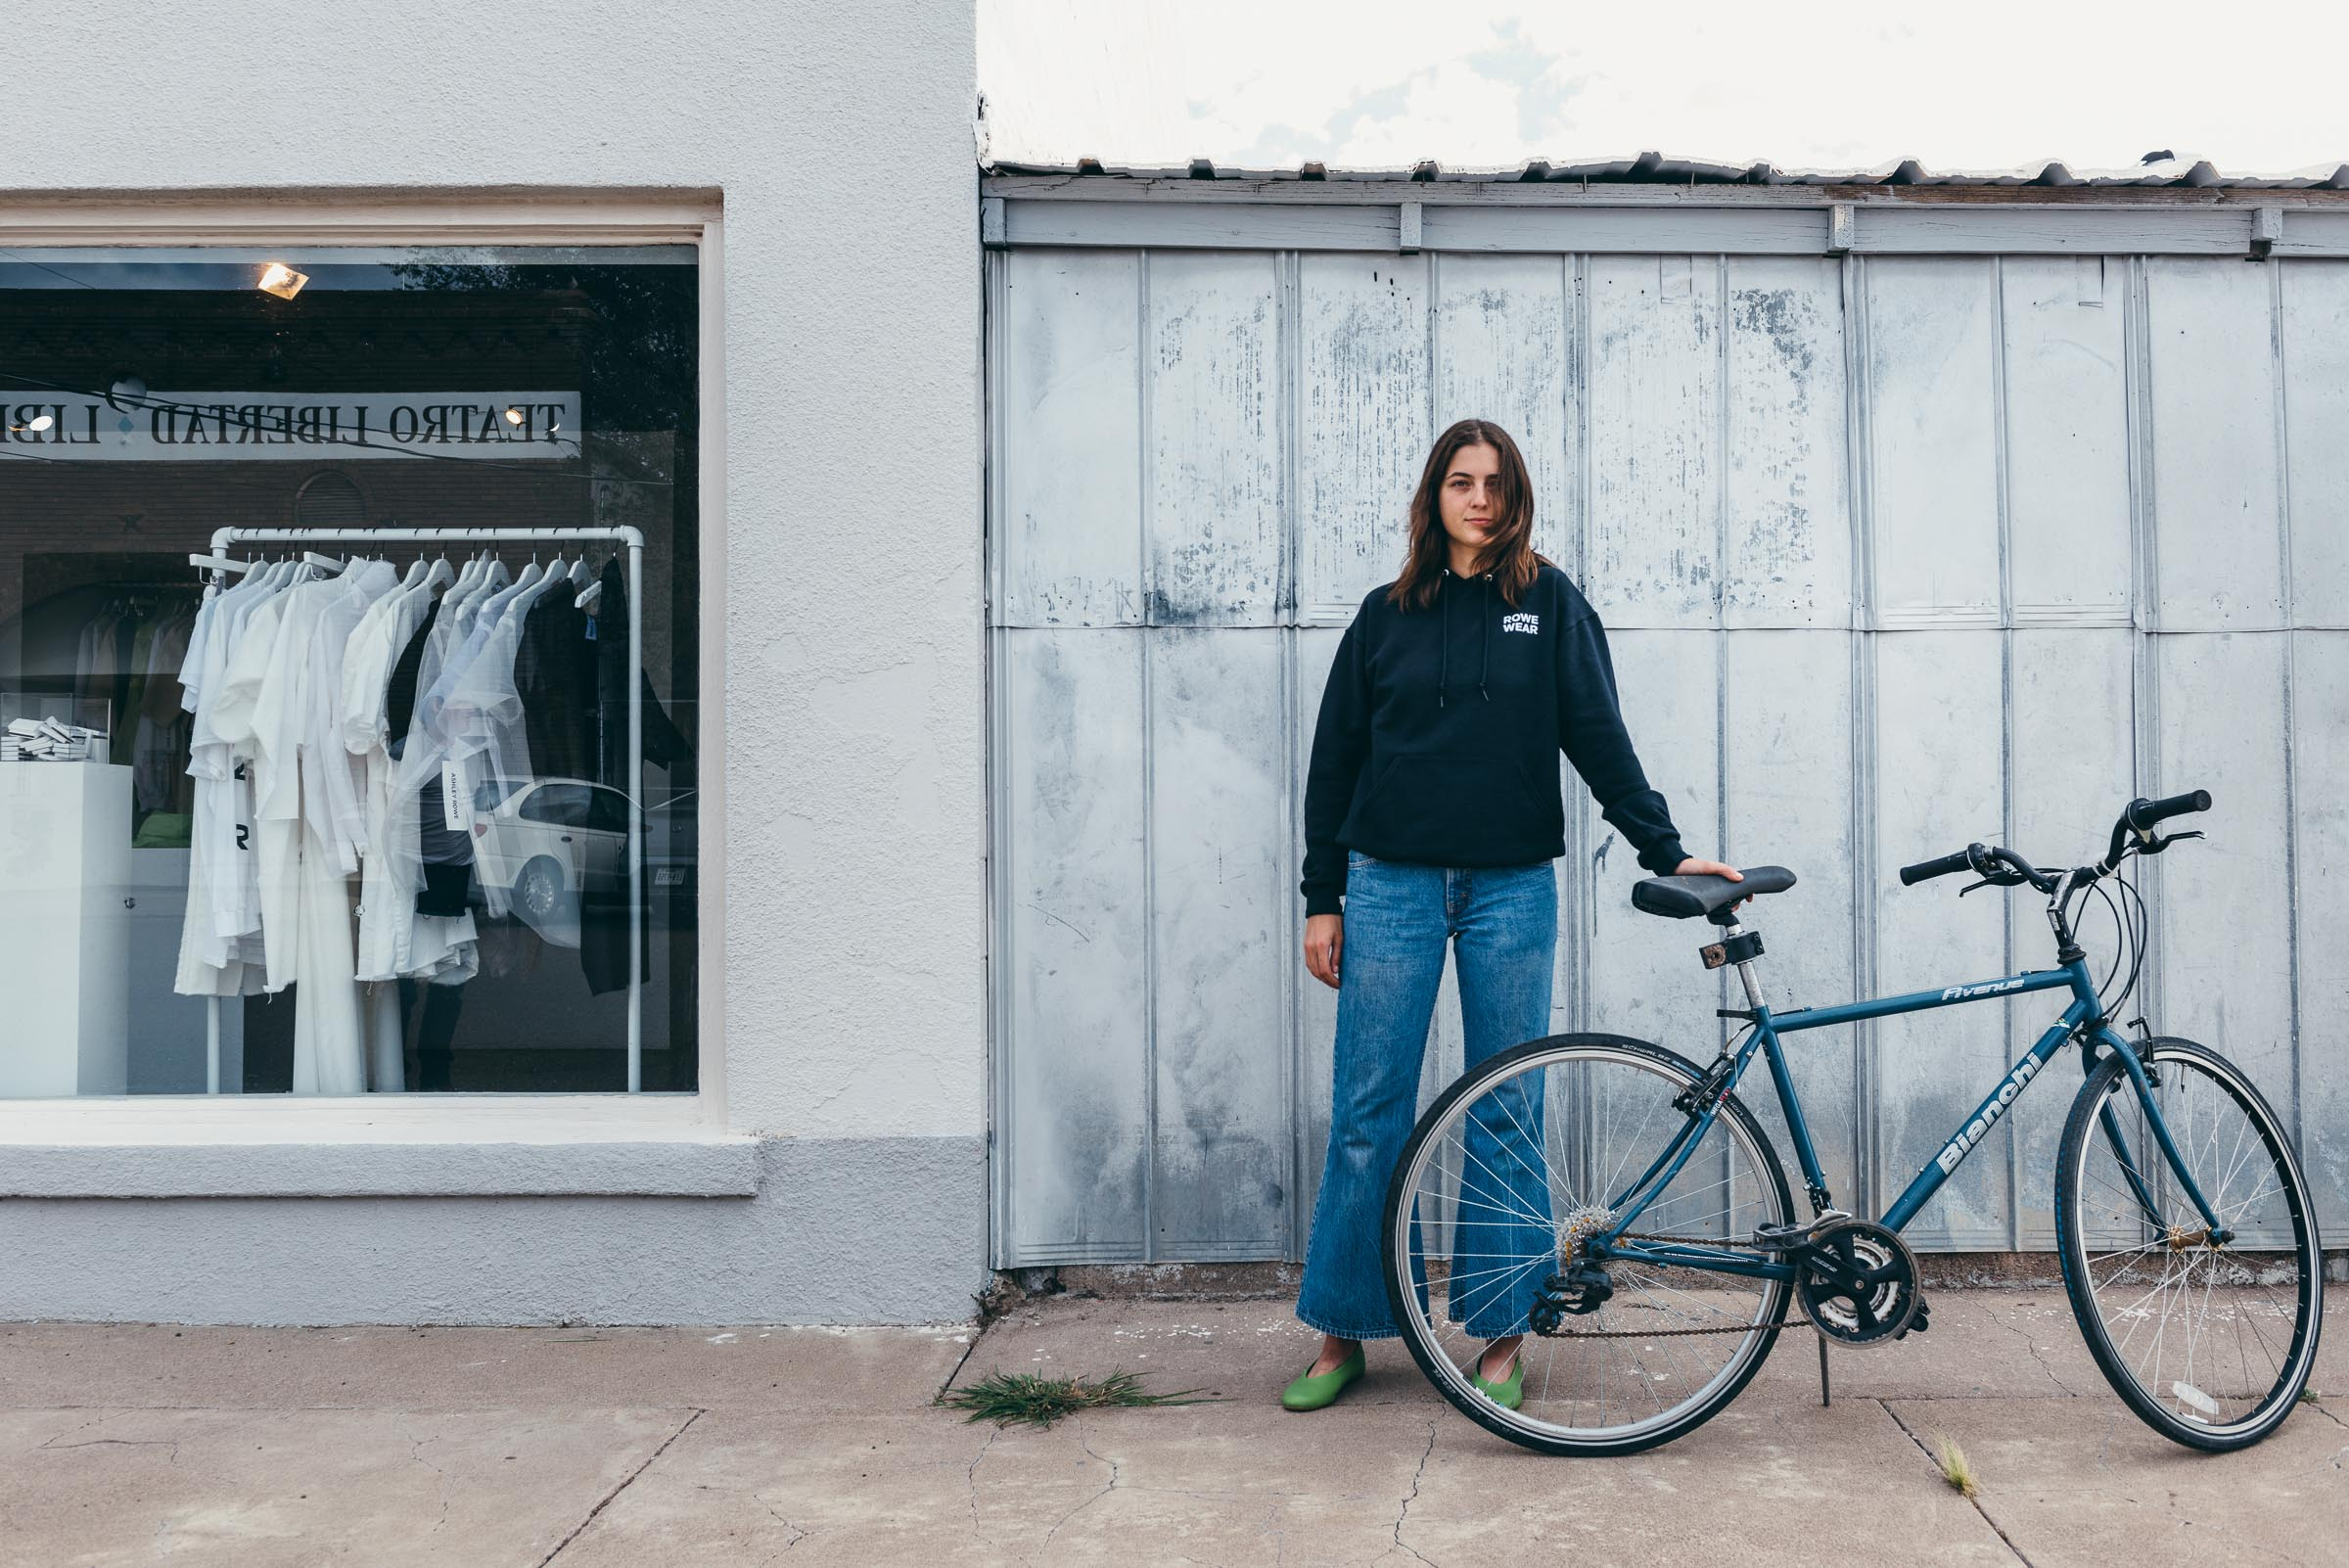 Street photography portrait - shop sales assistant with bicycle, Marfa TX